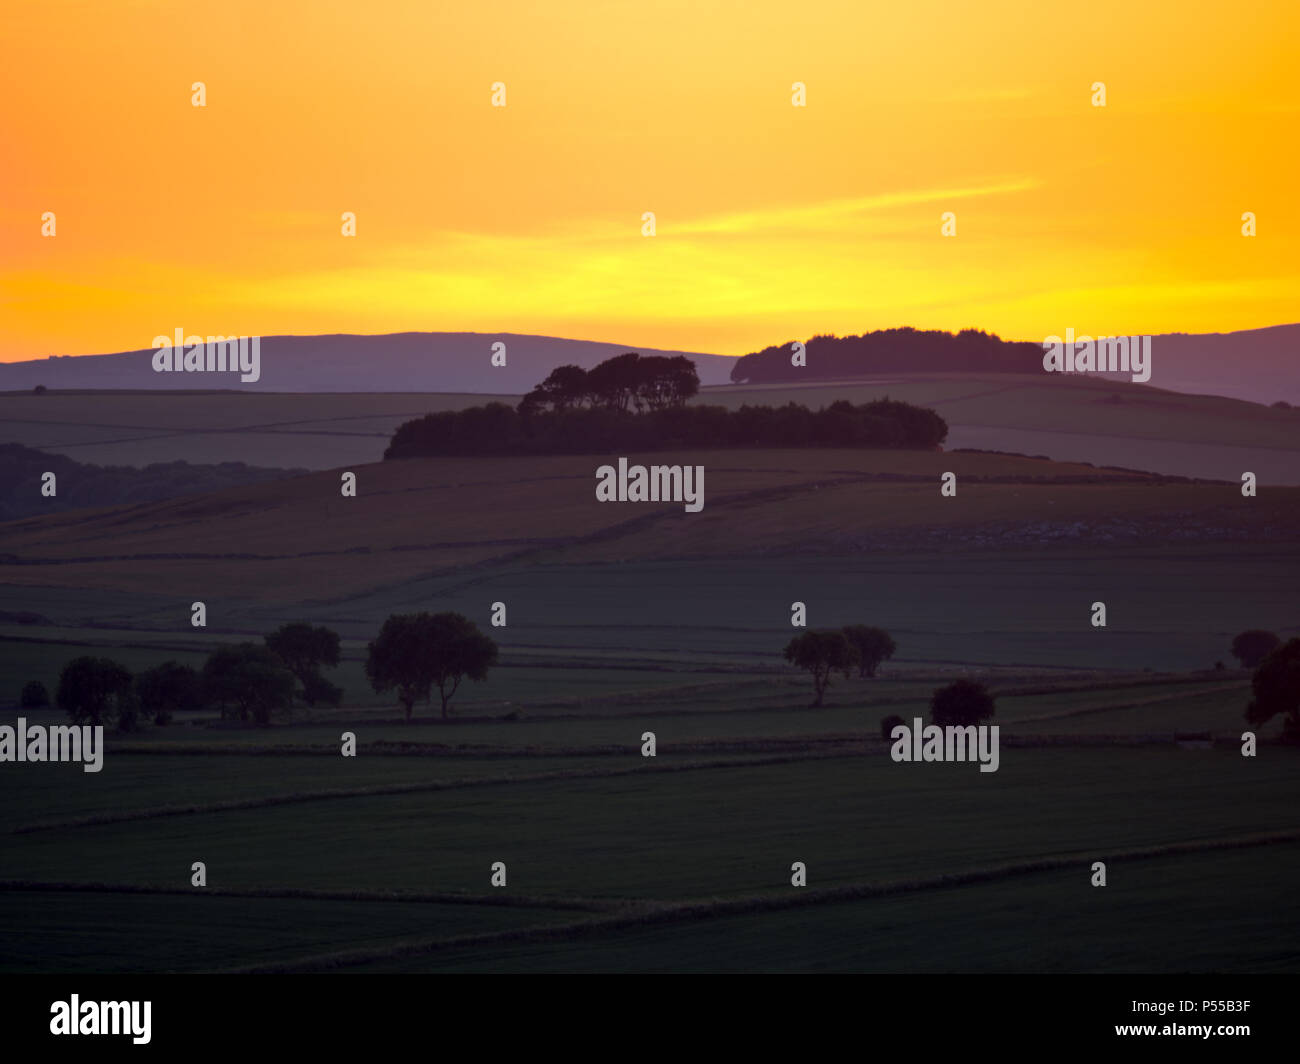 Harborough Rocks, Peak District, UK. 24th June, 2018. Weather UK: Sunset over Minning Low hill Historic England monument with a chambered tomb & two bowl barrows viewed from Harborough Rocks, Peak District National Park, Derbyshire, UK Credit: Doug Blane/Alamy Live News Stock Photo